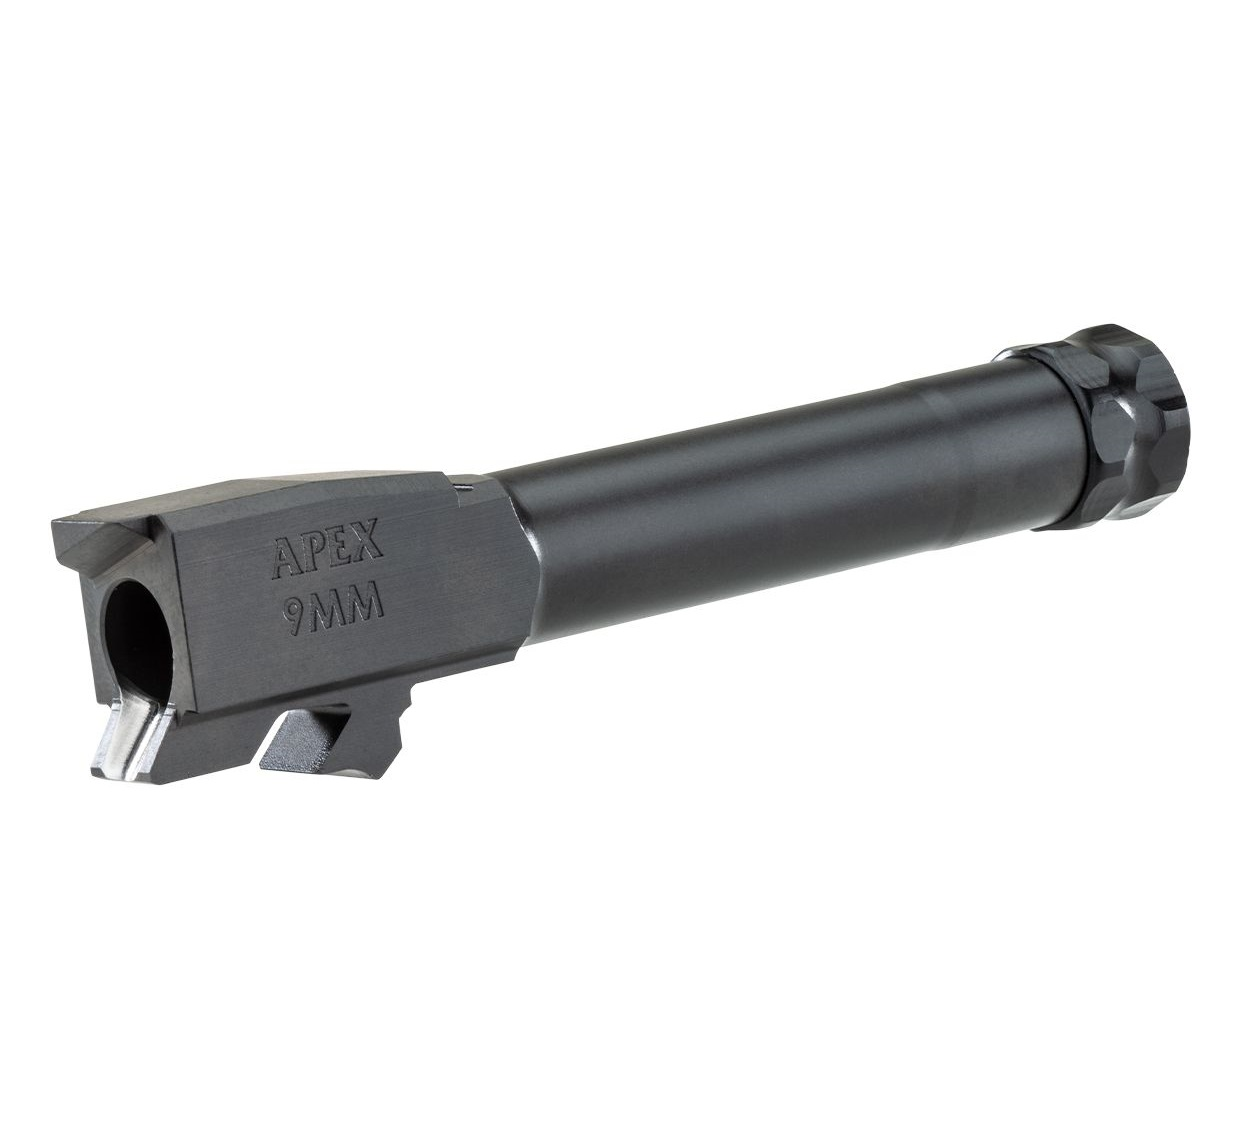 APEX TACTICAL RELEASES NEW COMPACT THREADED BARRELS